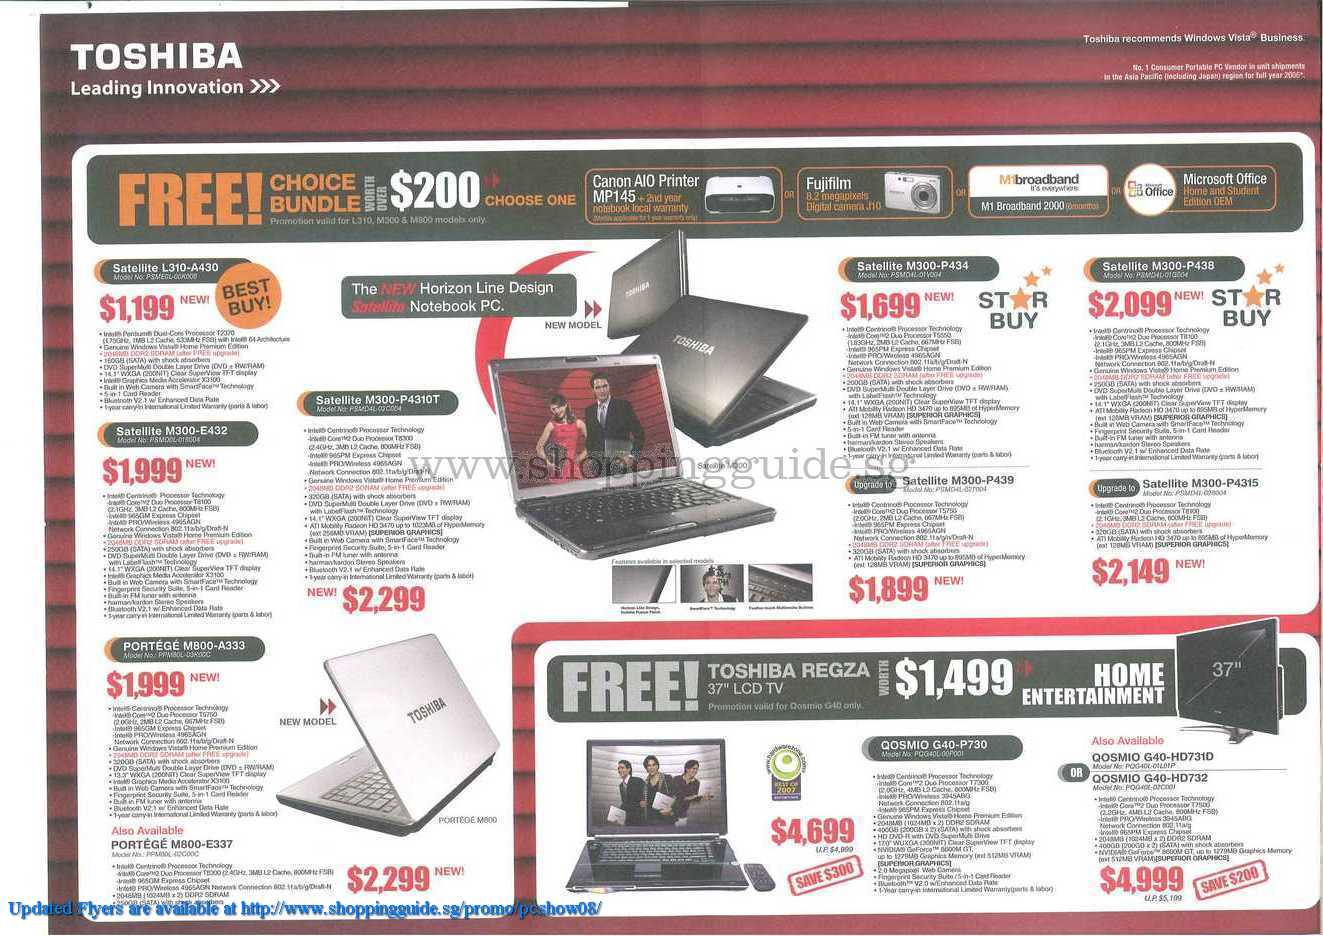 PC Show 2008 price list image brochure of Toshiba ShoppingGuide.SG-PcShow08-115